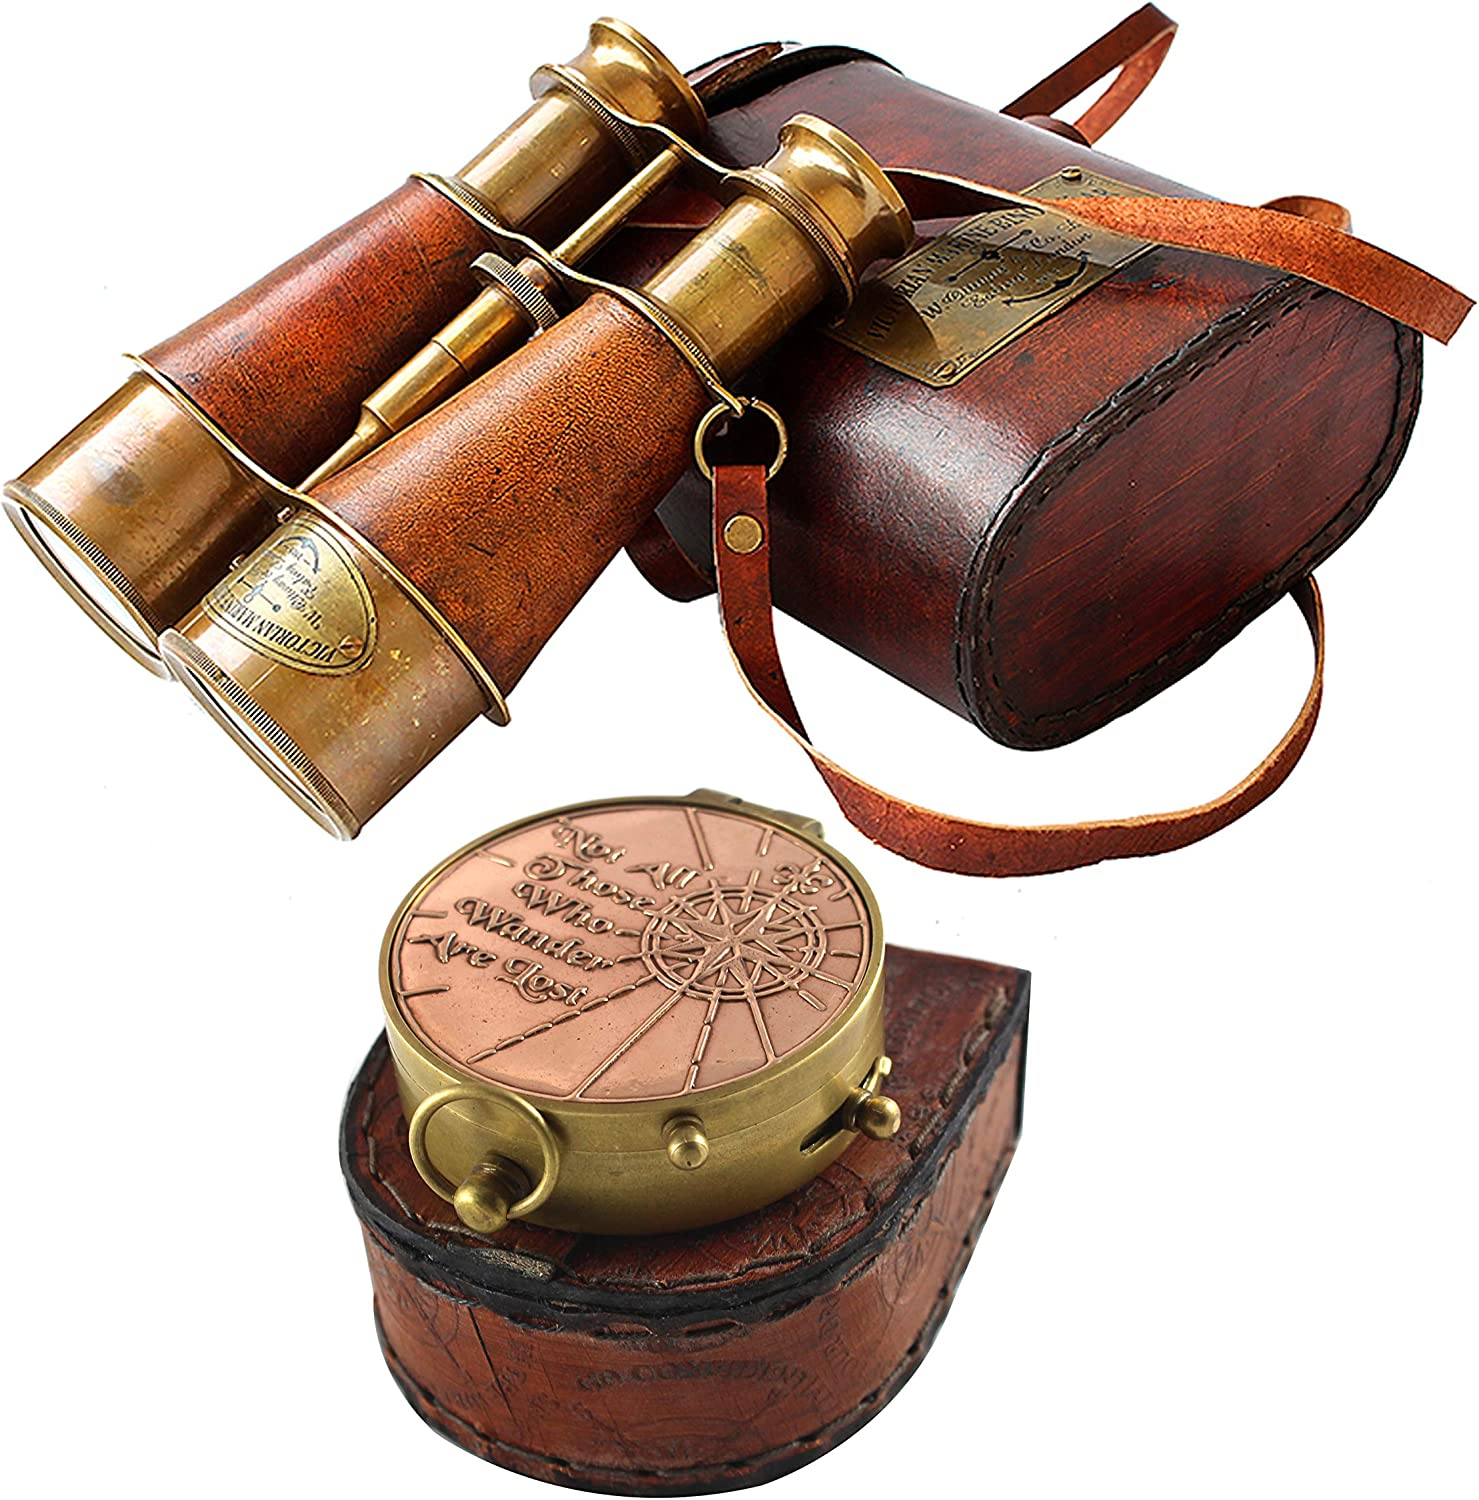 Nautical Victorian Marine Binocular Leather Case with Brass Copper Qoute Compass